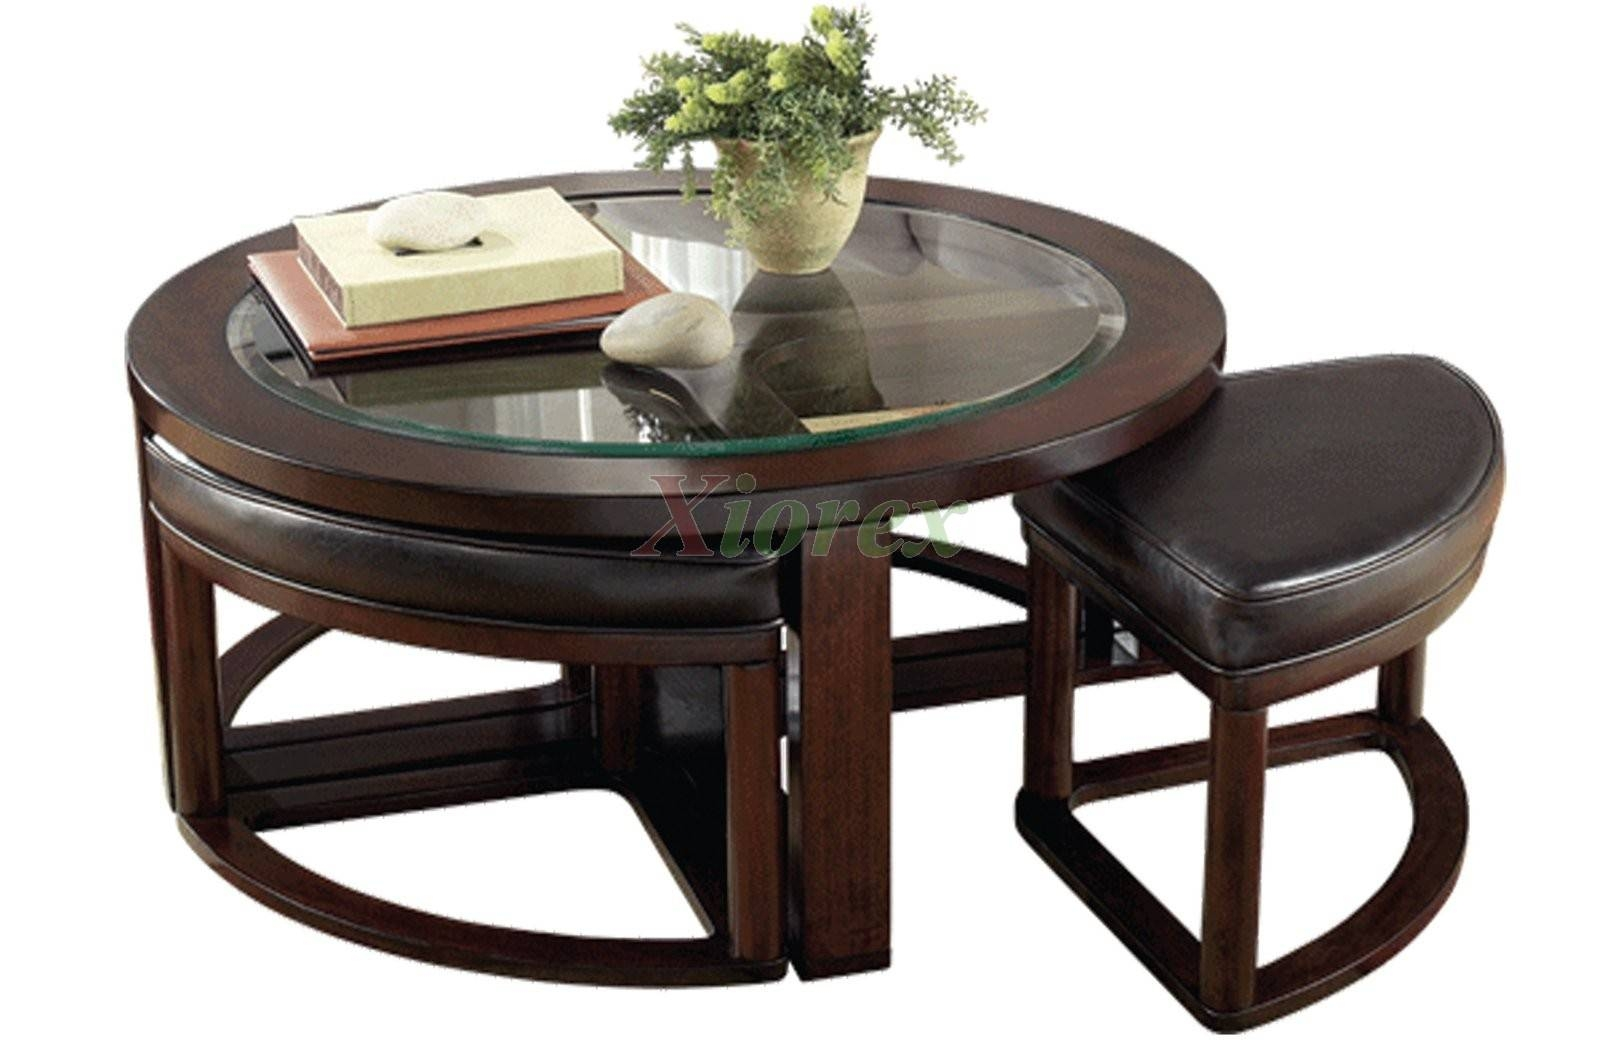 Wooden Coffee Table With 4 Stools - Coffee Addicts pertaining to Ethnic Coffee Tables (Image 30 of 30)